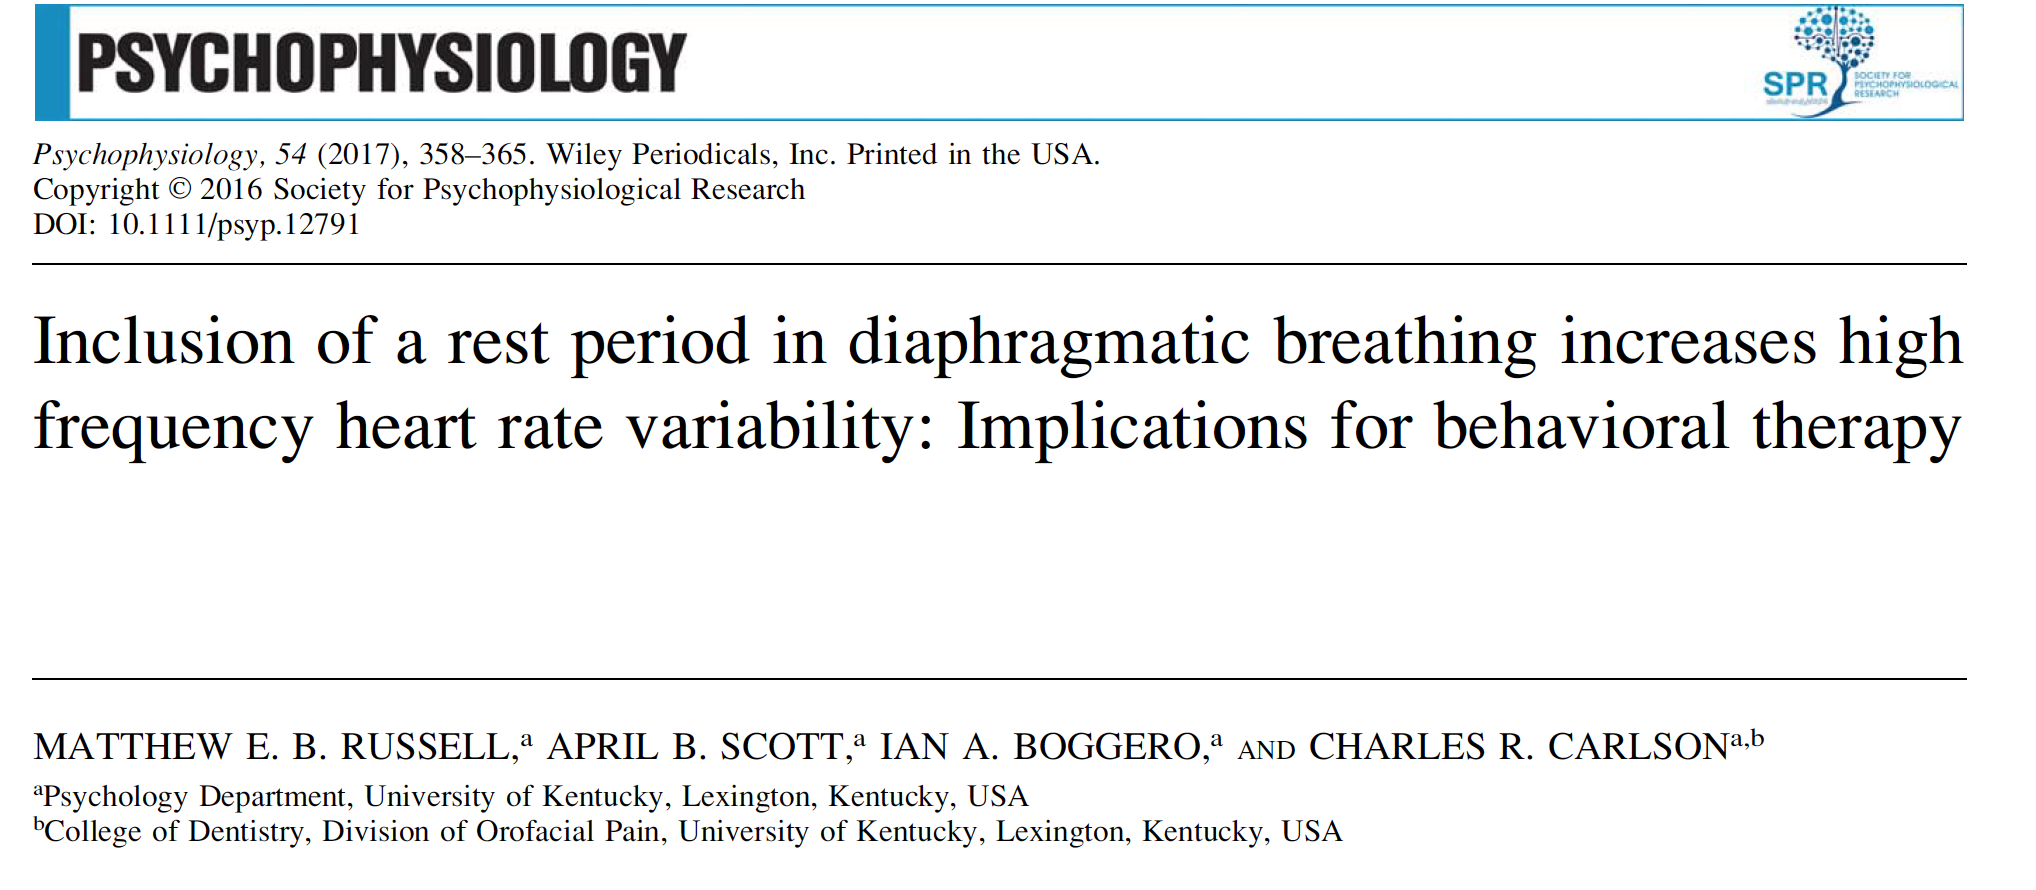 - Breathe slowly (and pause) to improve heart rate variability